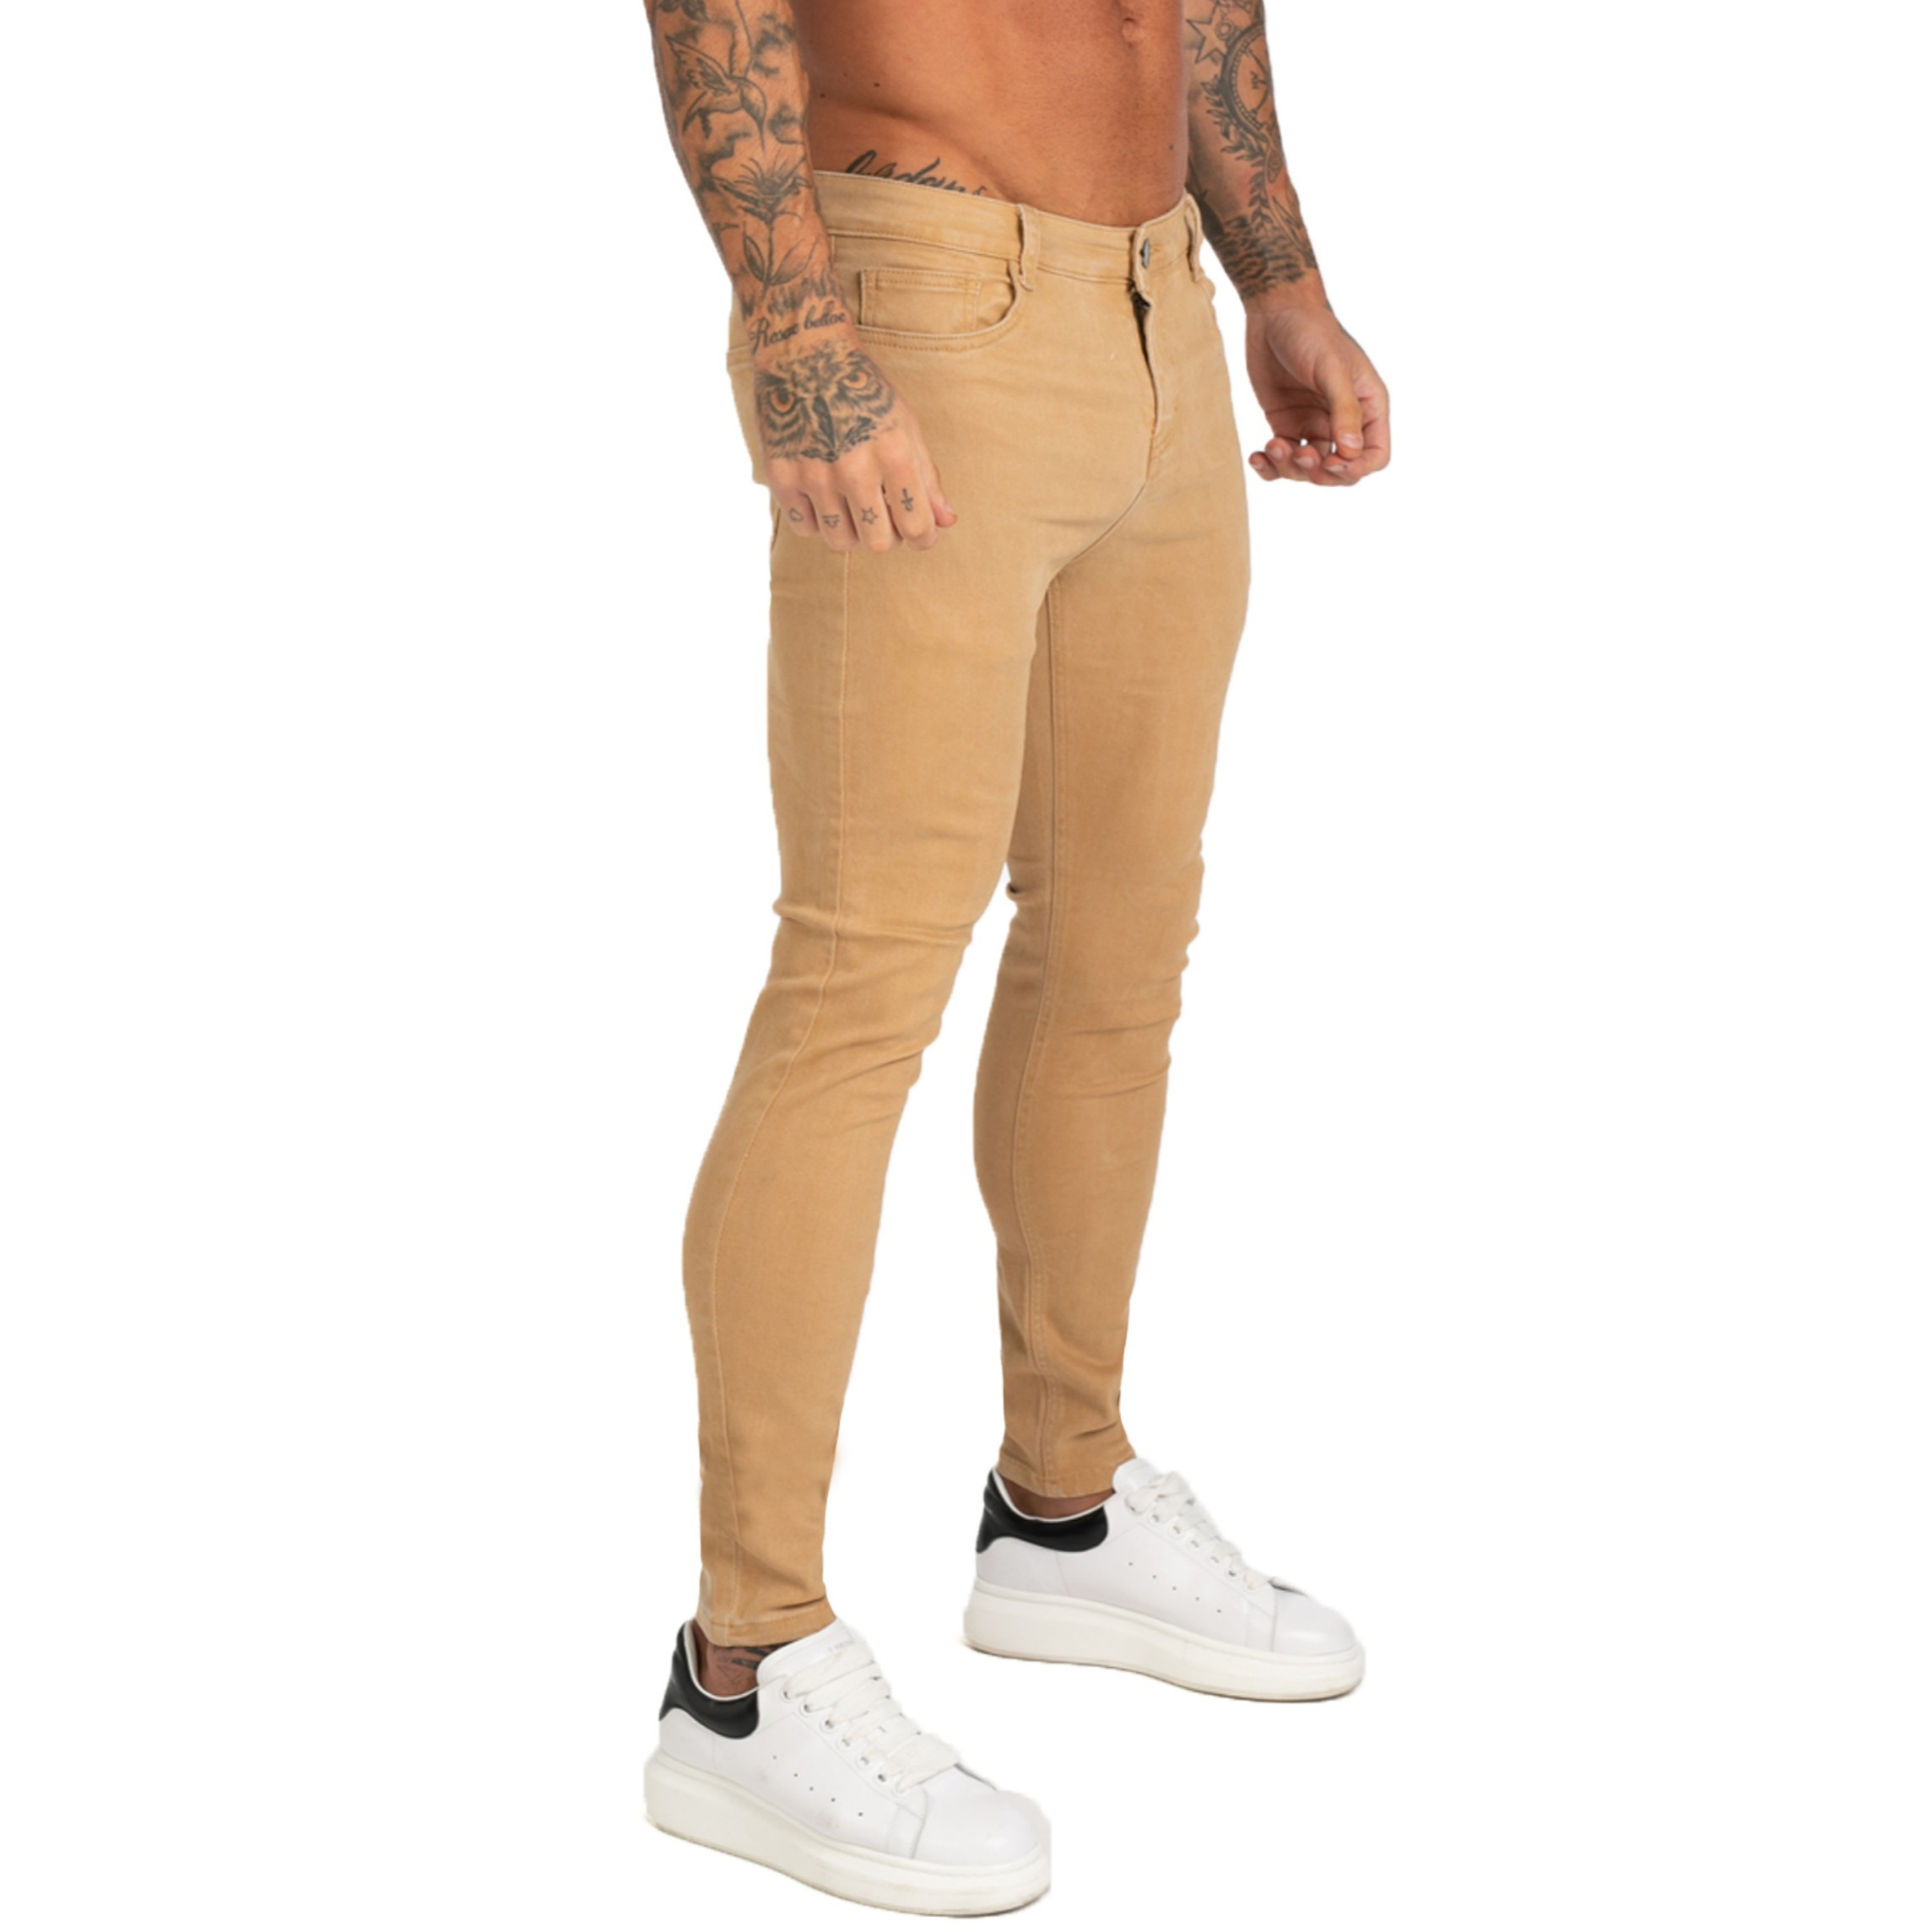 GINGTTO Mens Clothing Jeans Homme Pants Super Skinny Fit Mens Jeans Elastic Waist Bestting For Athletic Body Hip Hop Zm176